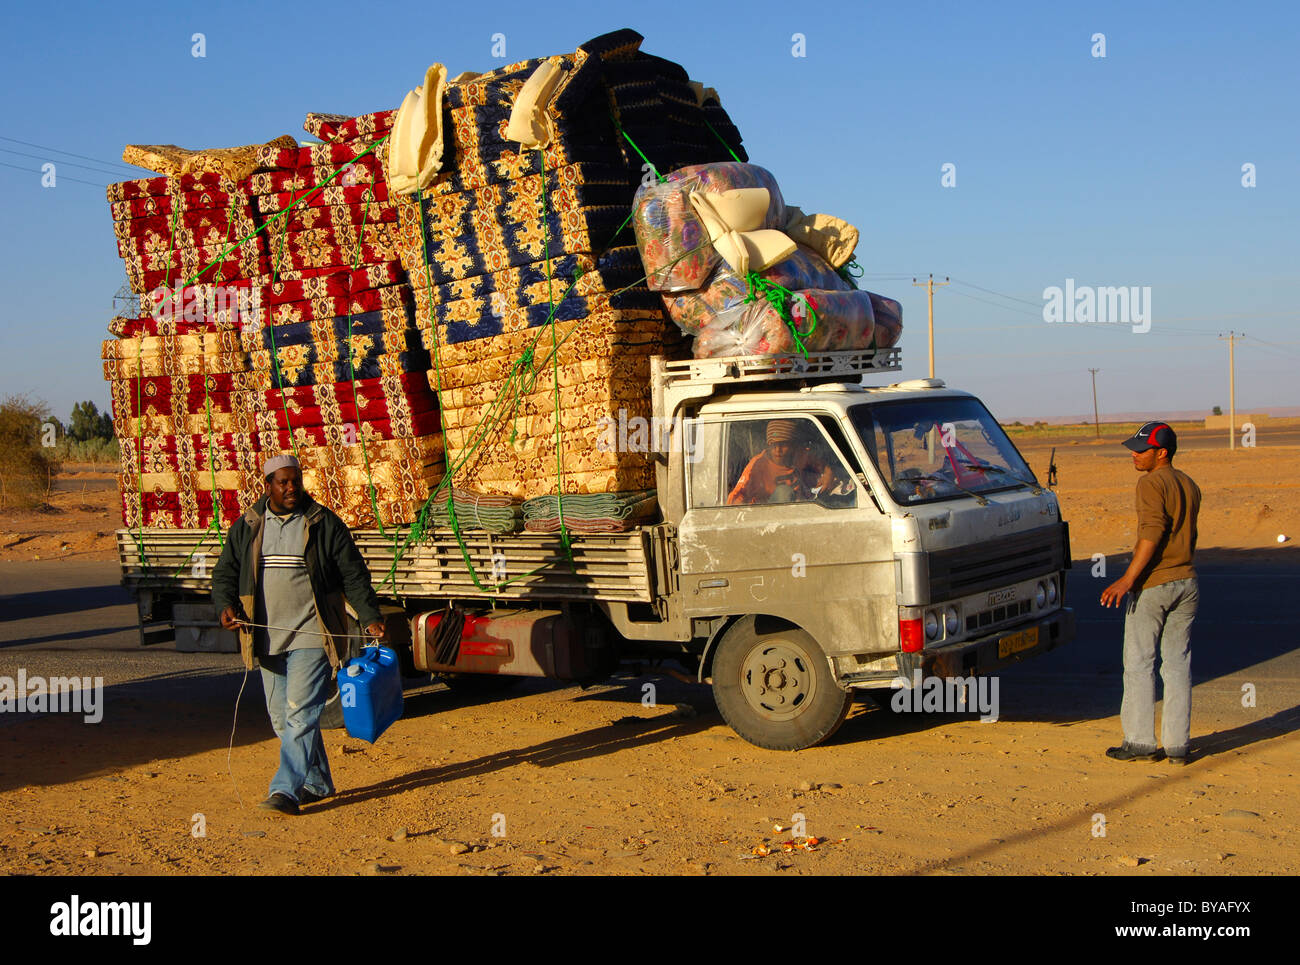 An overcharged pickup carrying colourful matrasses, Al Awaynat, Libya, North Africa - Stock Image